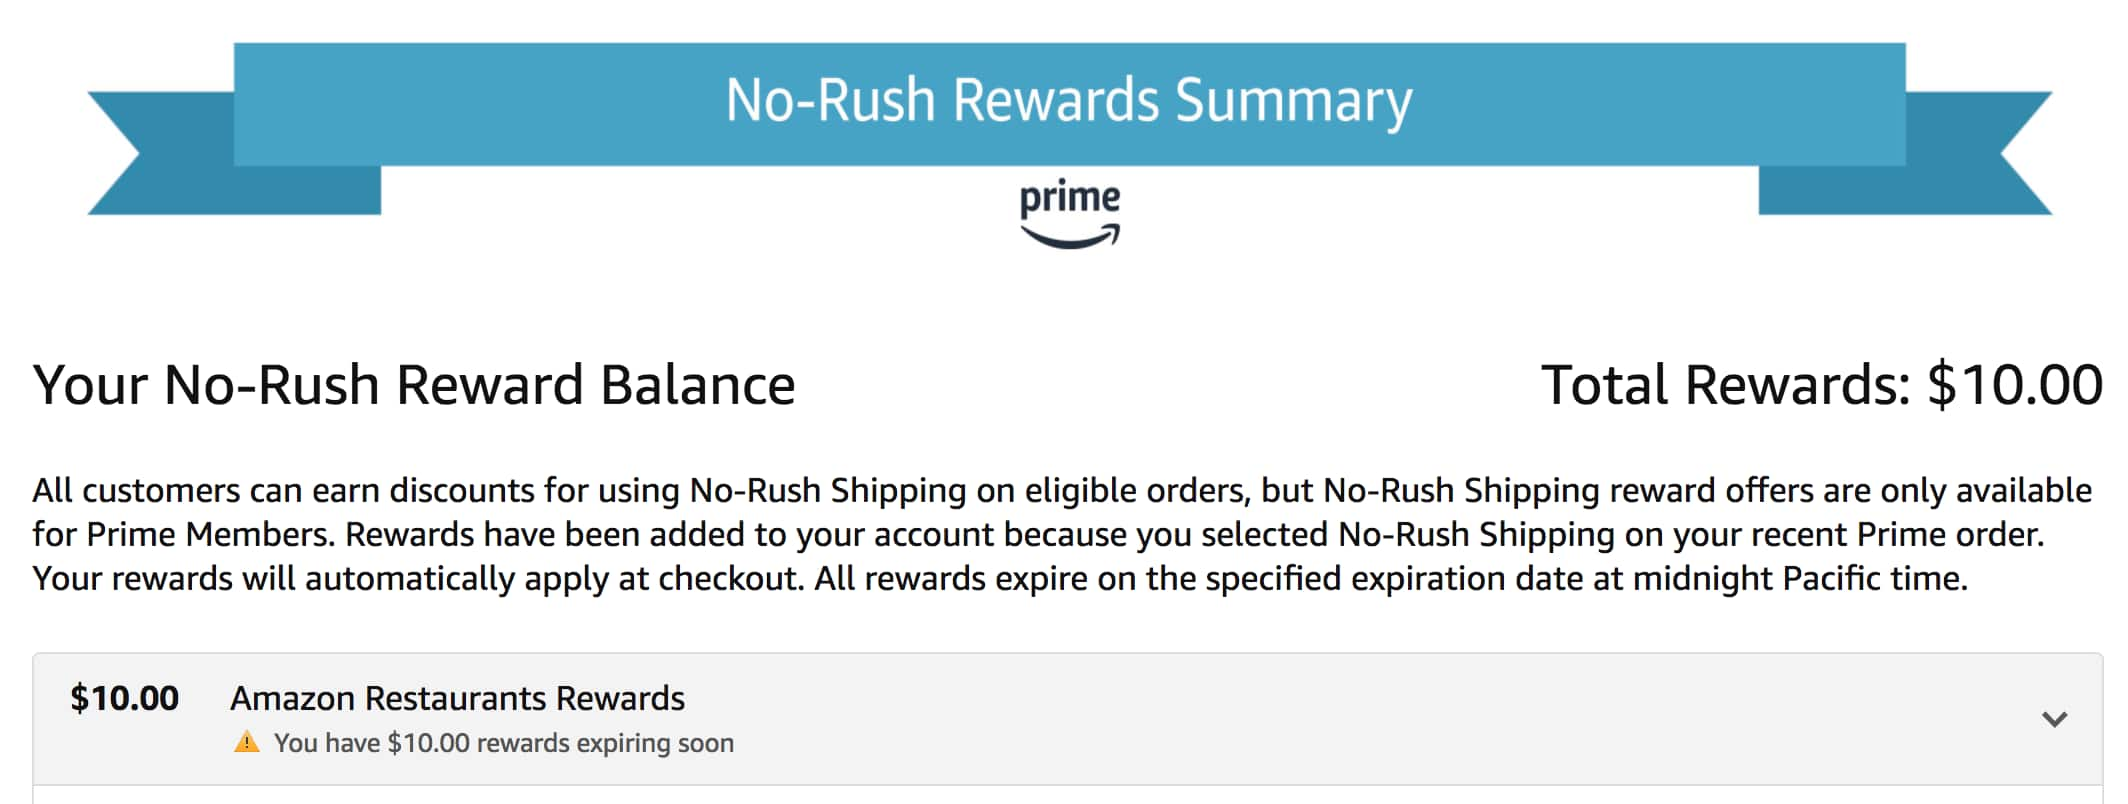 Getting the Most From Amazon's No-Rush Shipping Rewards - Slickdeals net